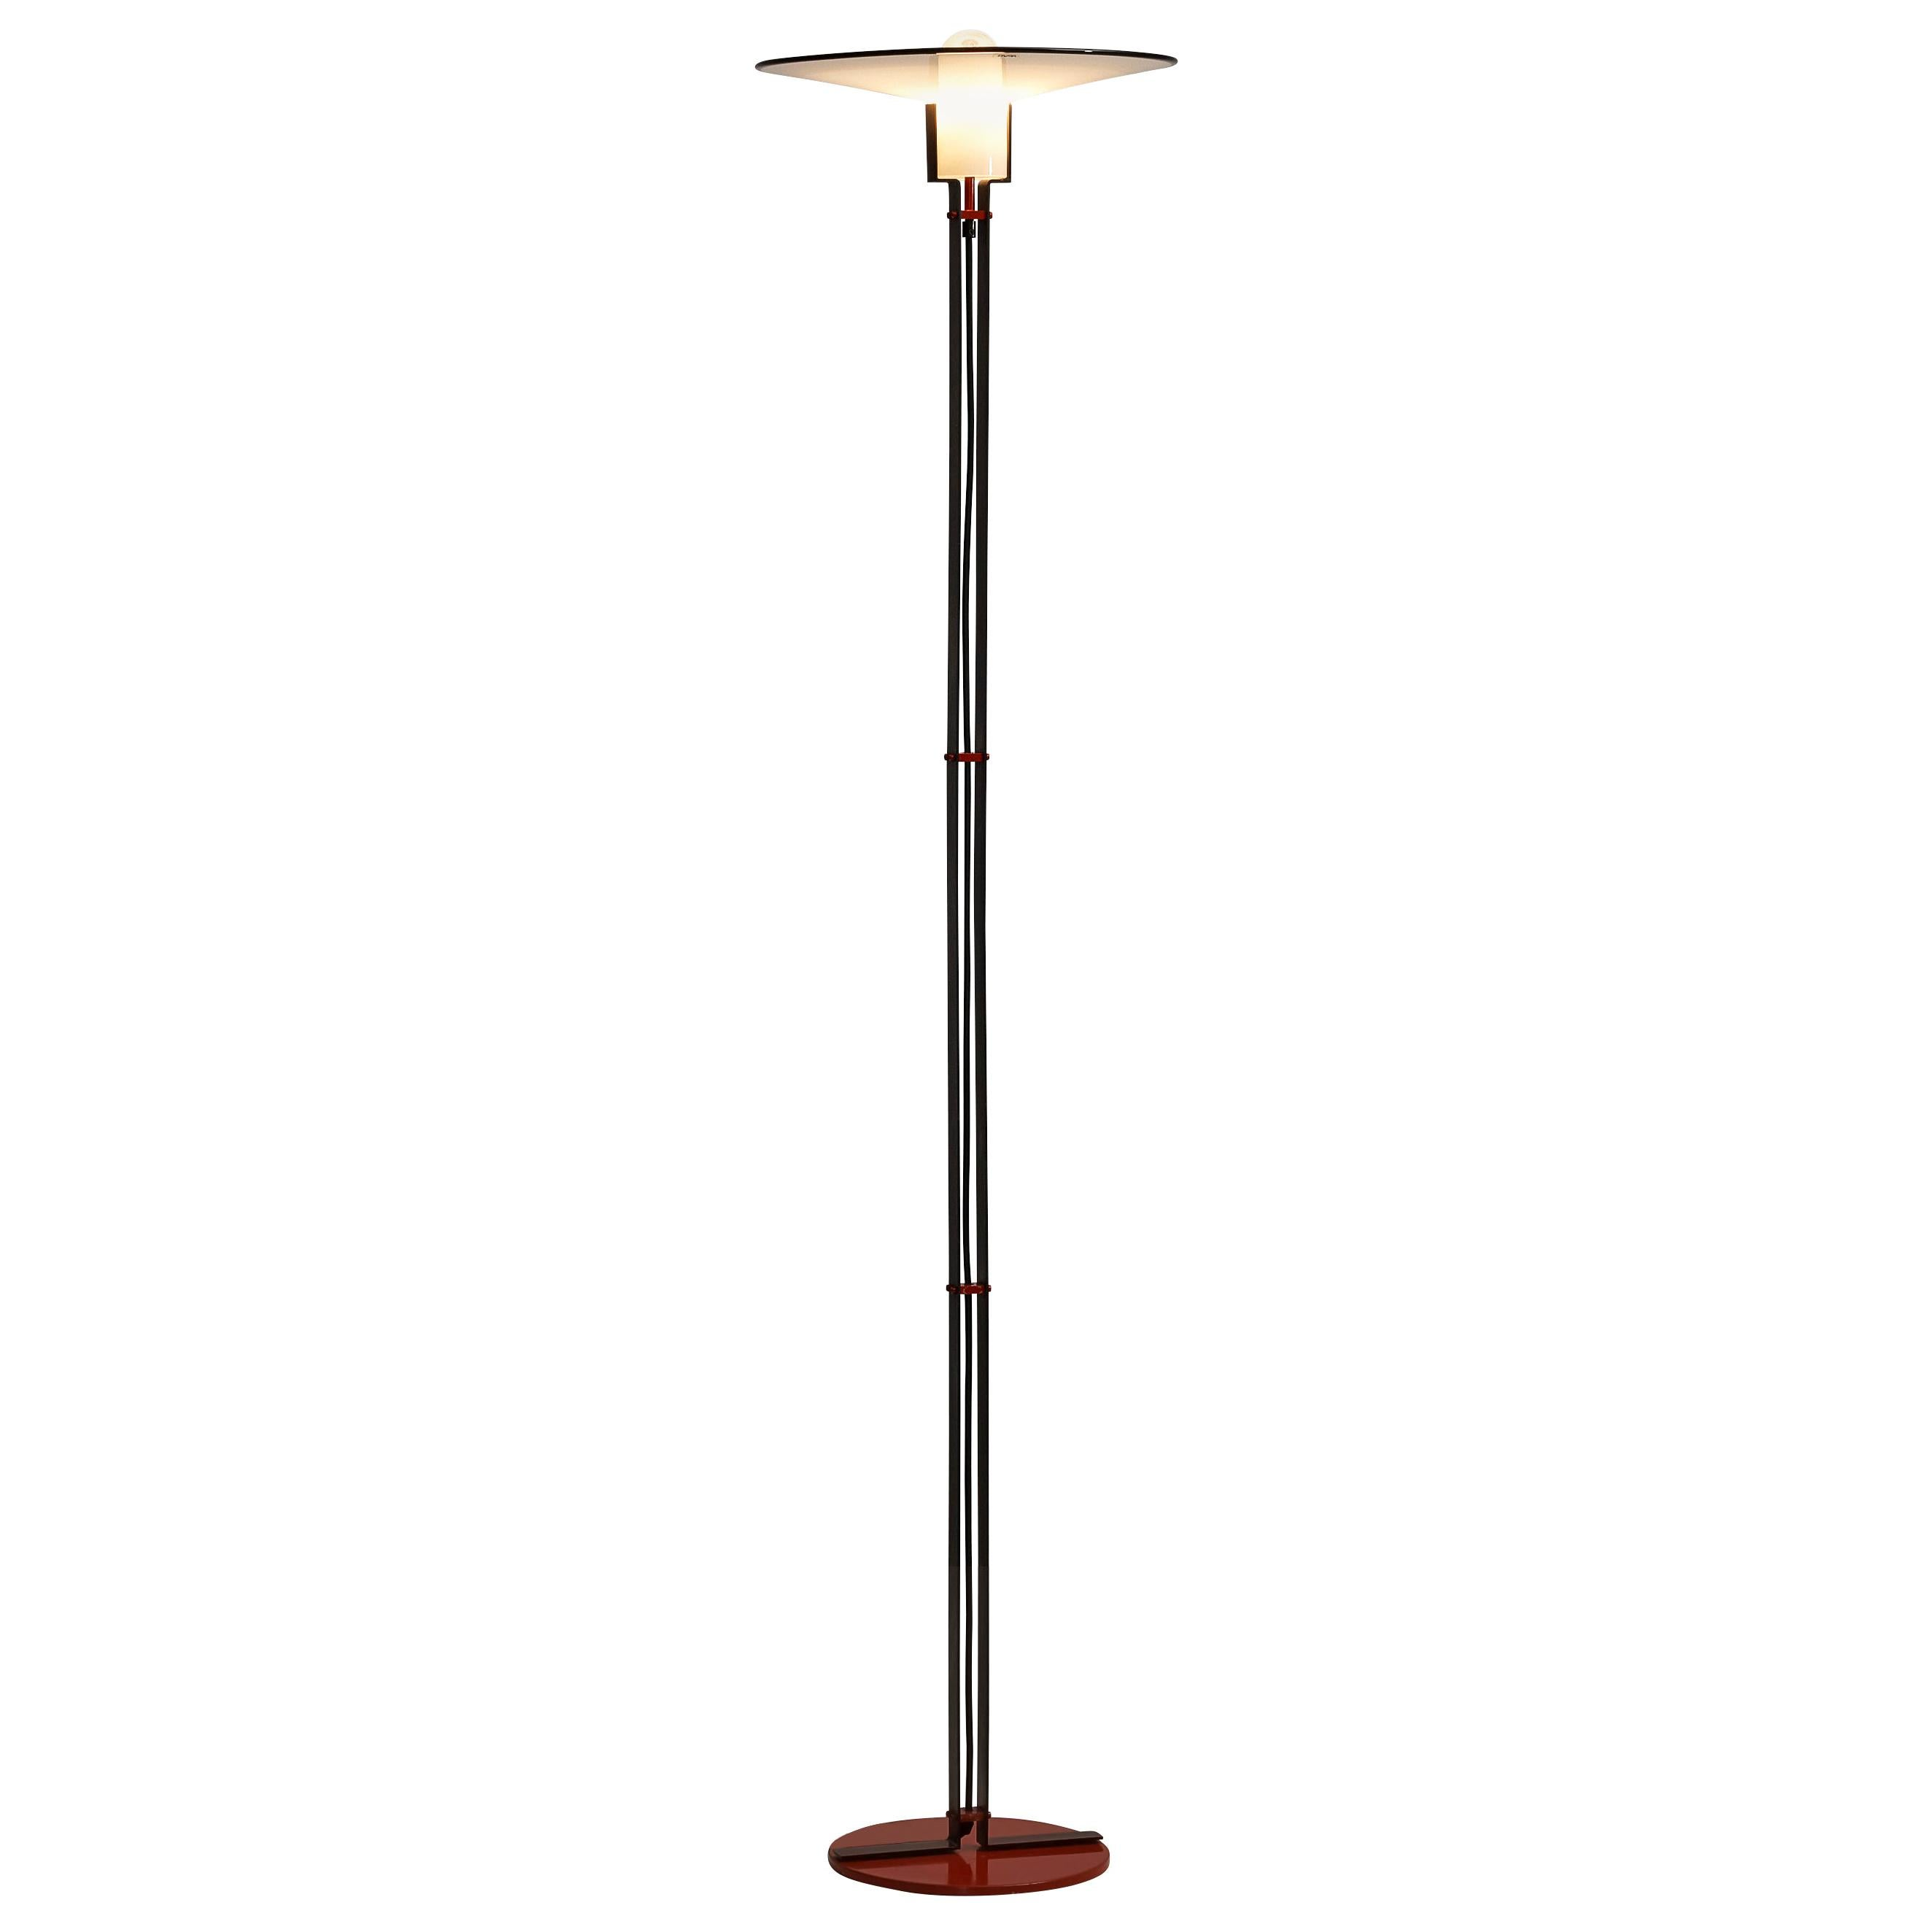 Italian Floor Lamp by VeArt in Black and Red Metal